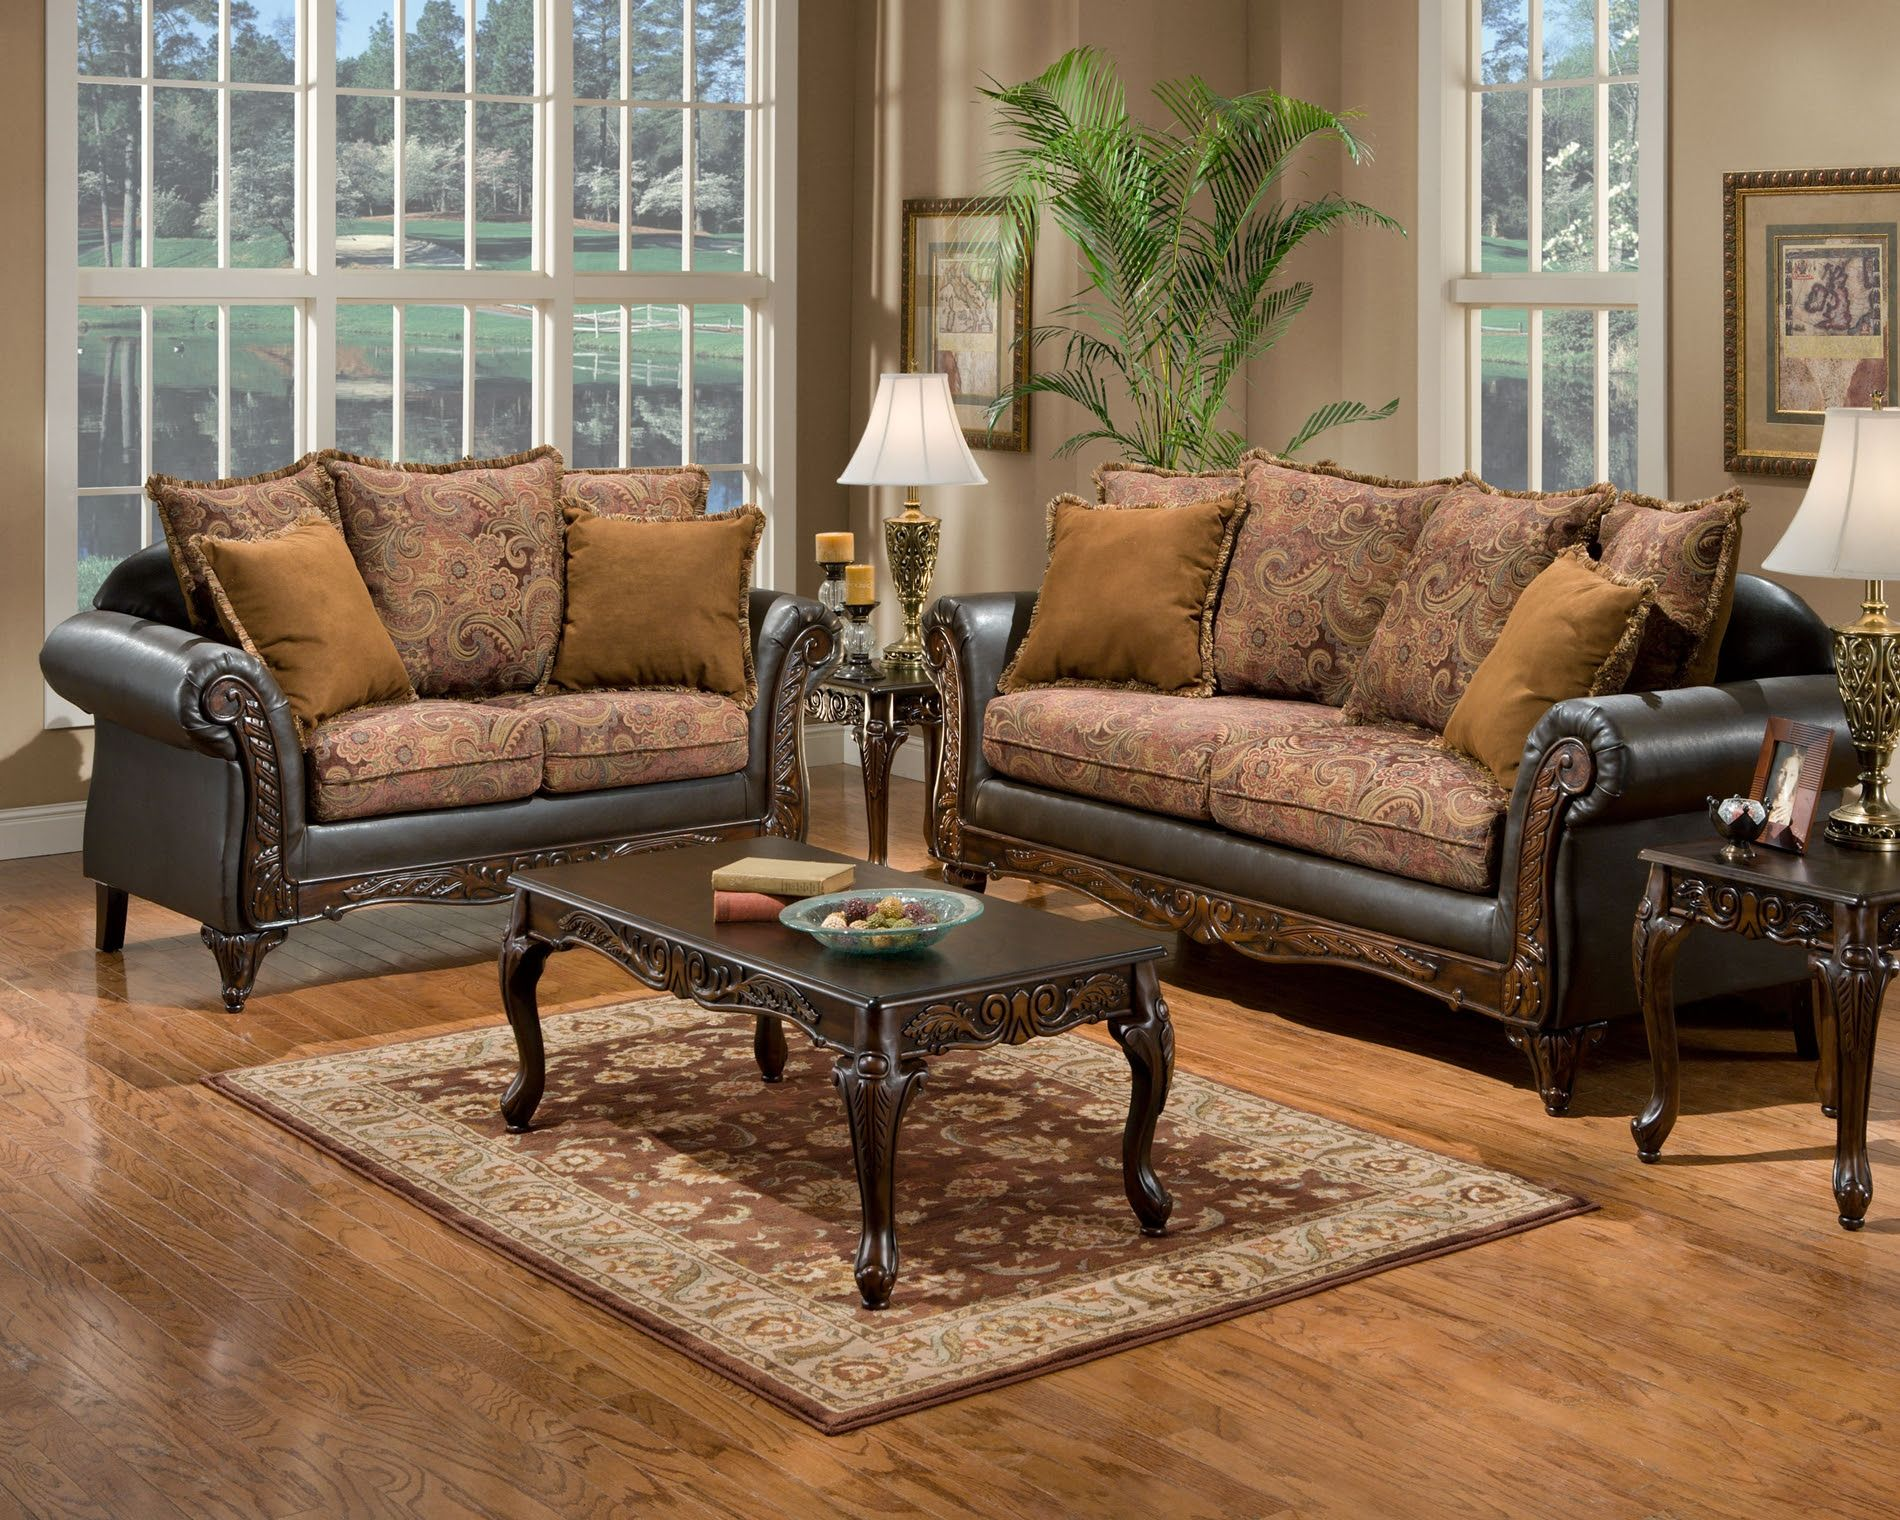 sofas big living full sectional simmons size furniture loveseat set sofa lots of chaise leather white and ashley sets cheap room upholstery couch